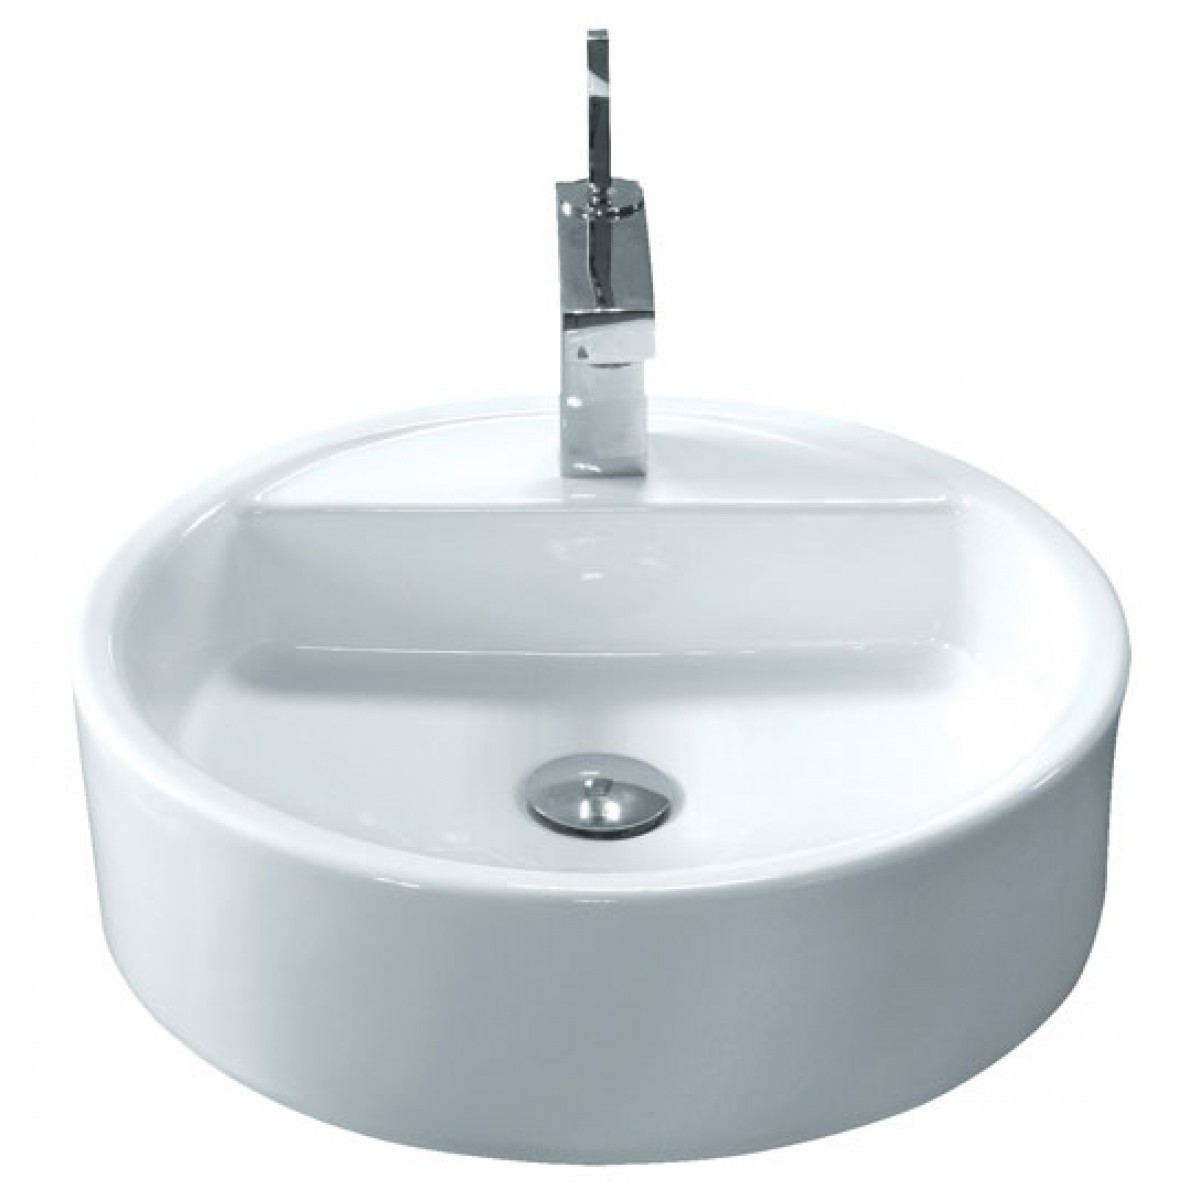 bathroom countertop height with vessel sink  Round Porcelain Ceramic Single Hole Countertop Bathroom ..